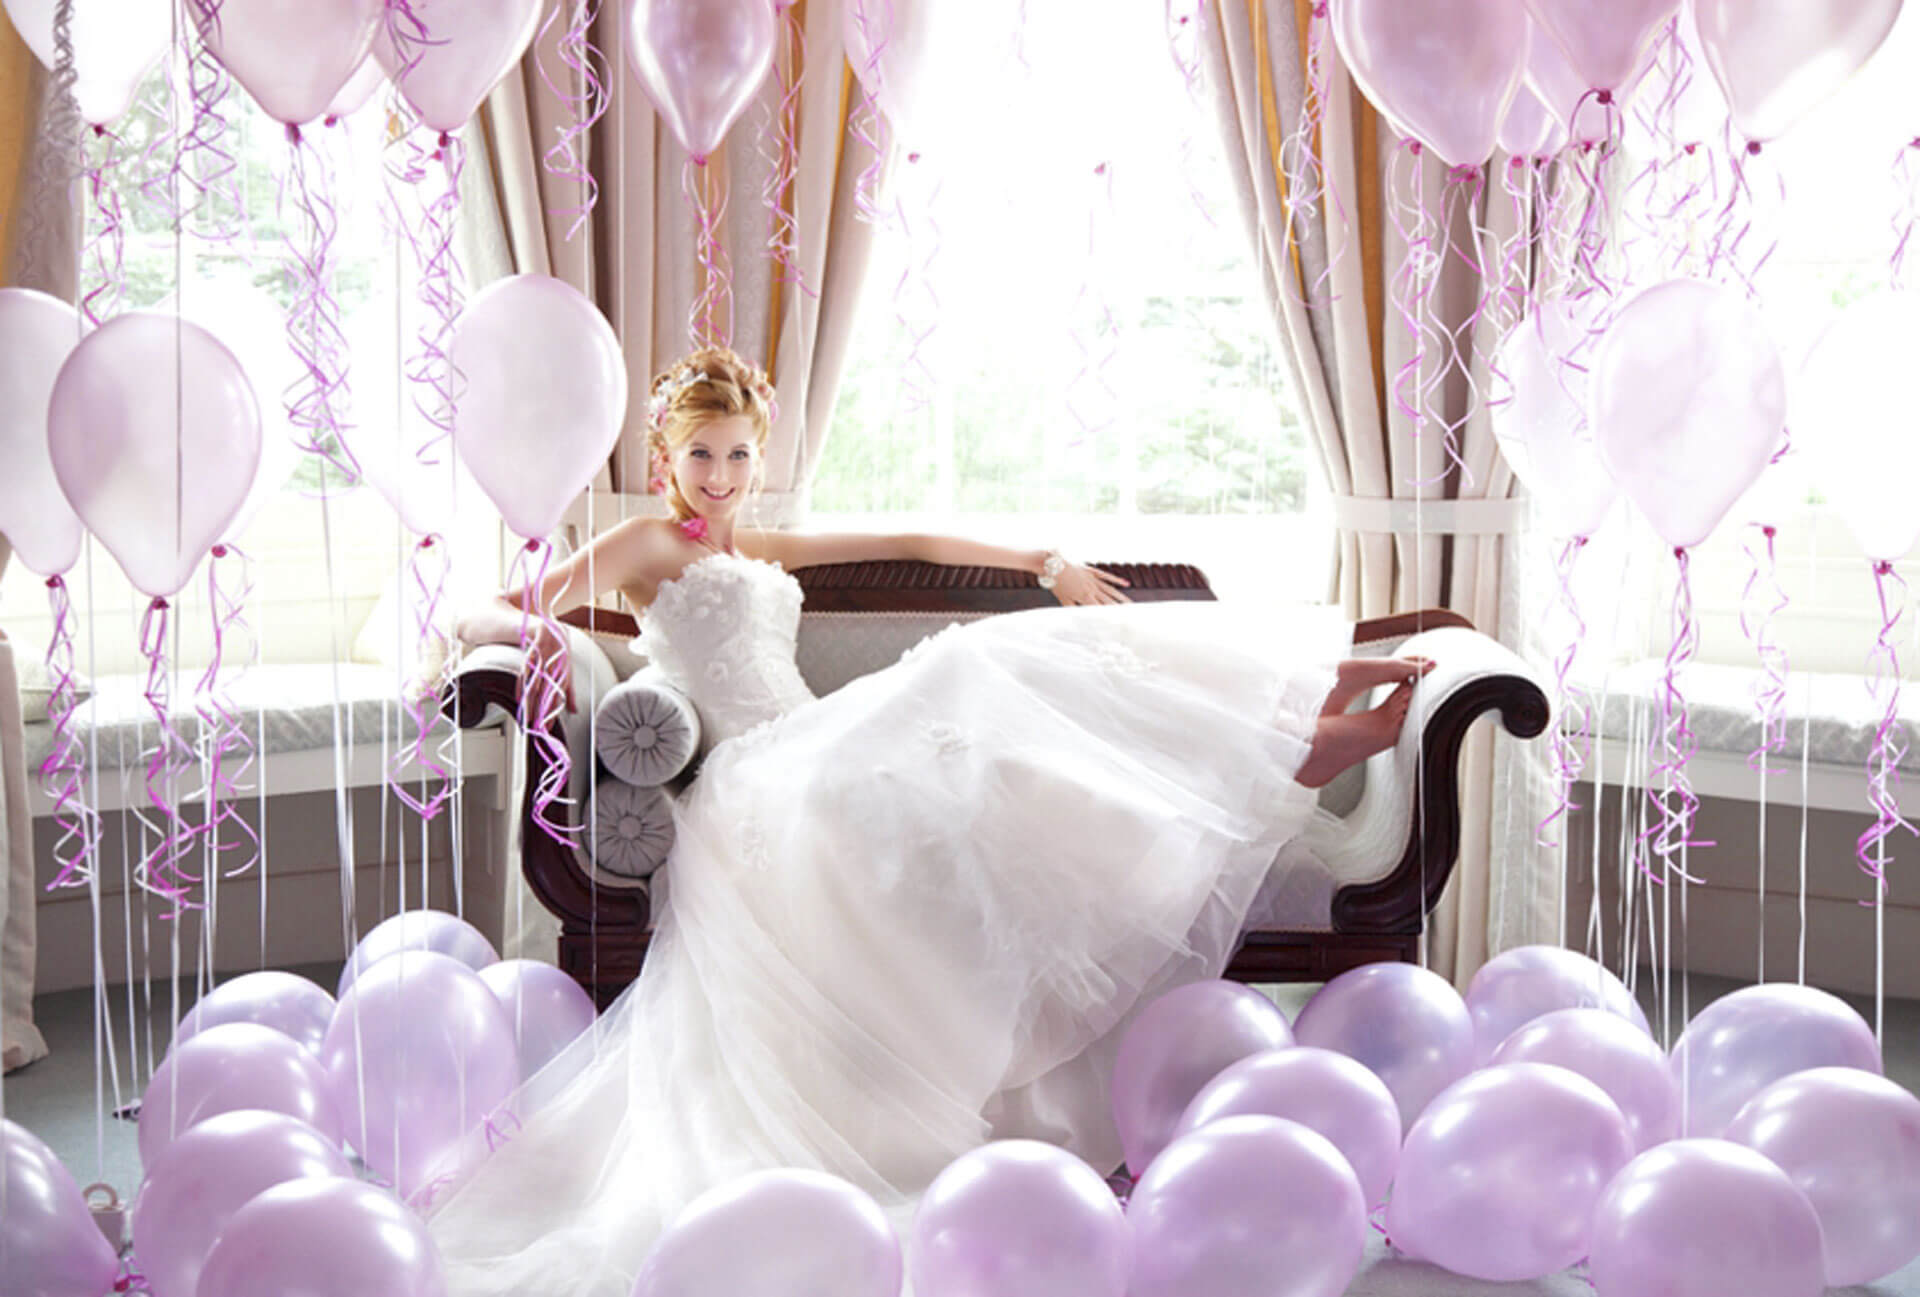 Balloon Decorations For Your Wedding In Italy Exclusive Italy